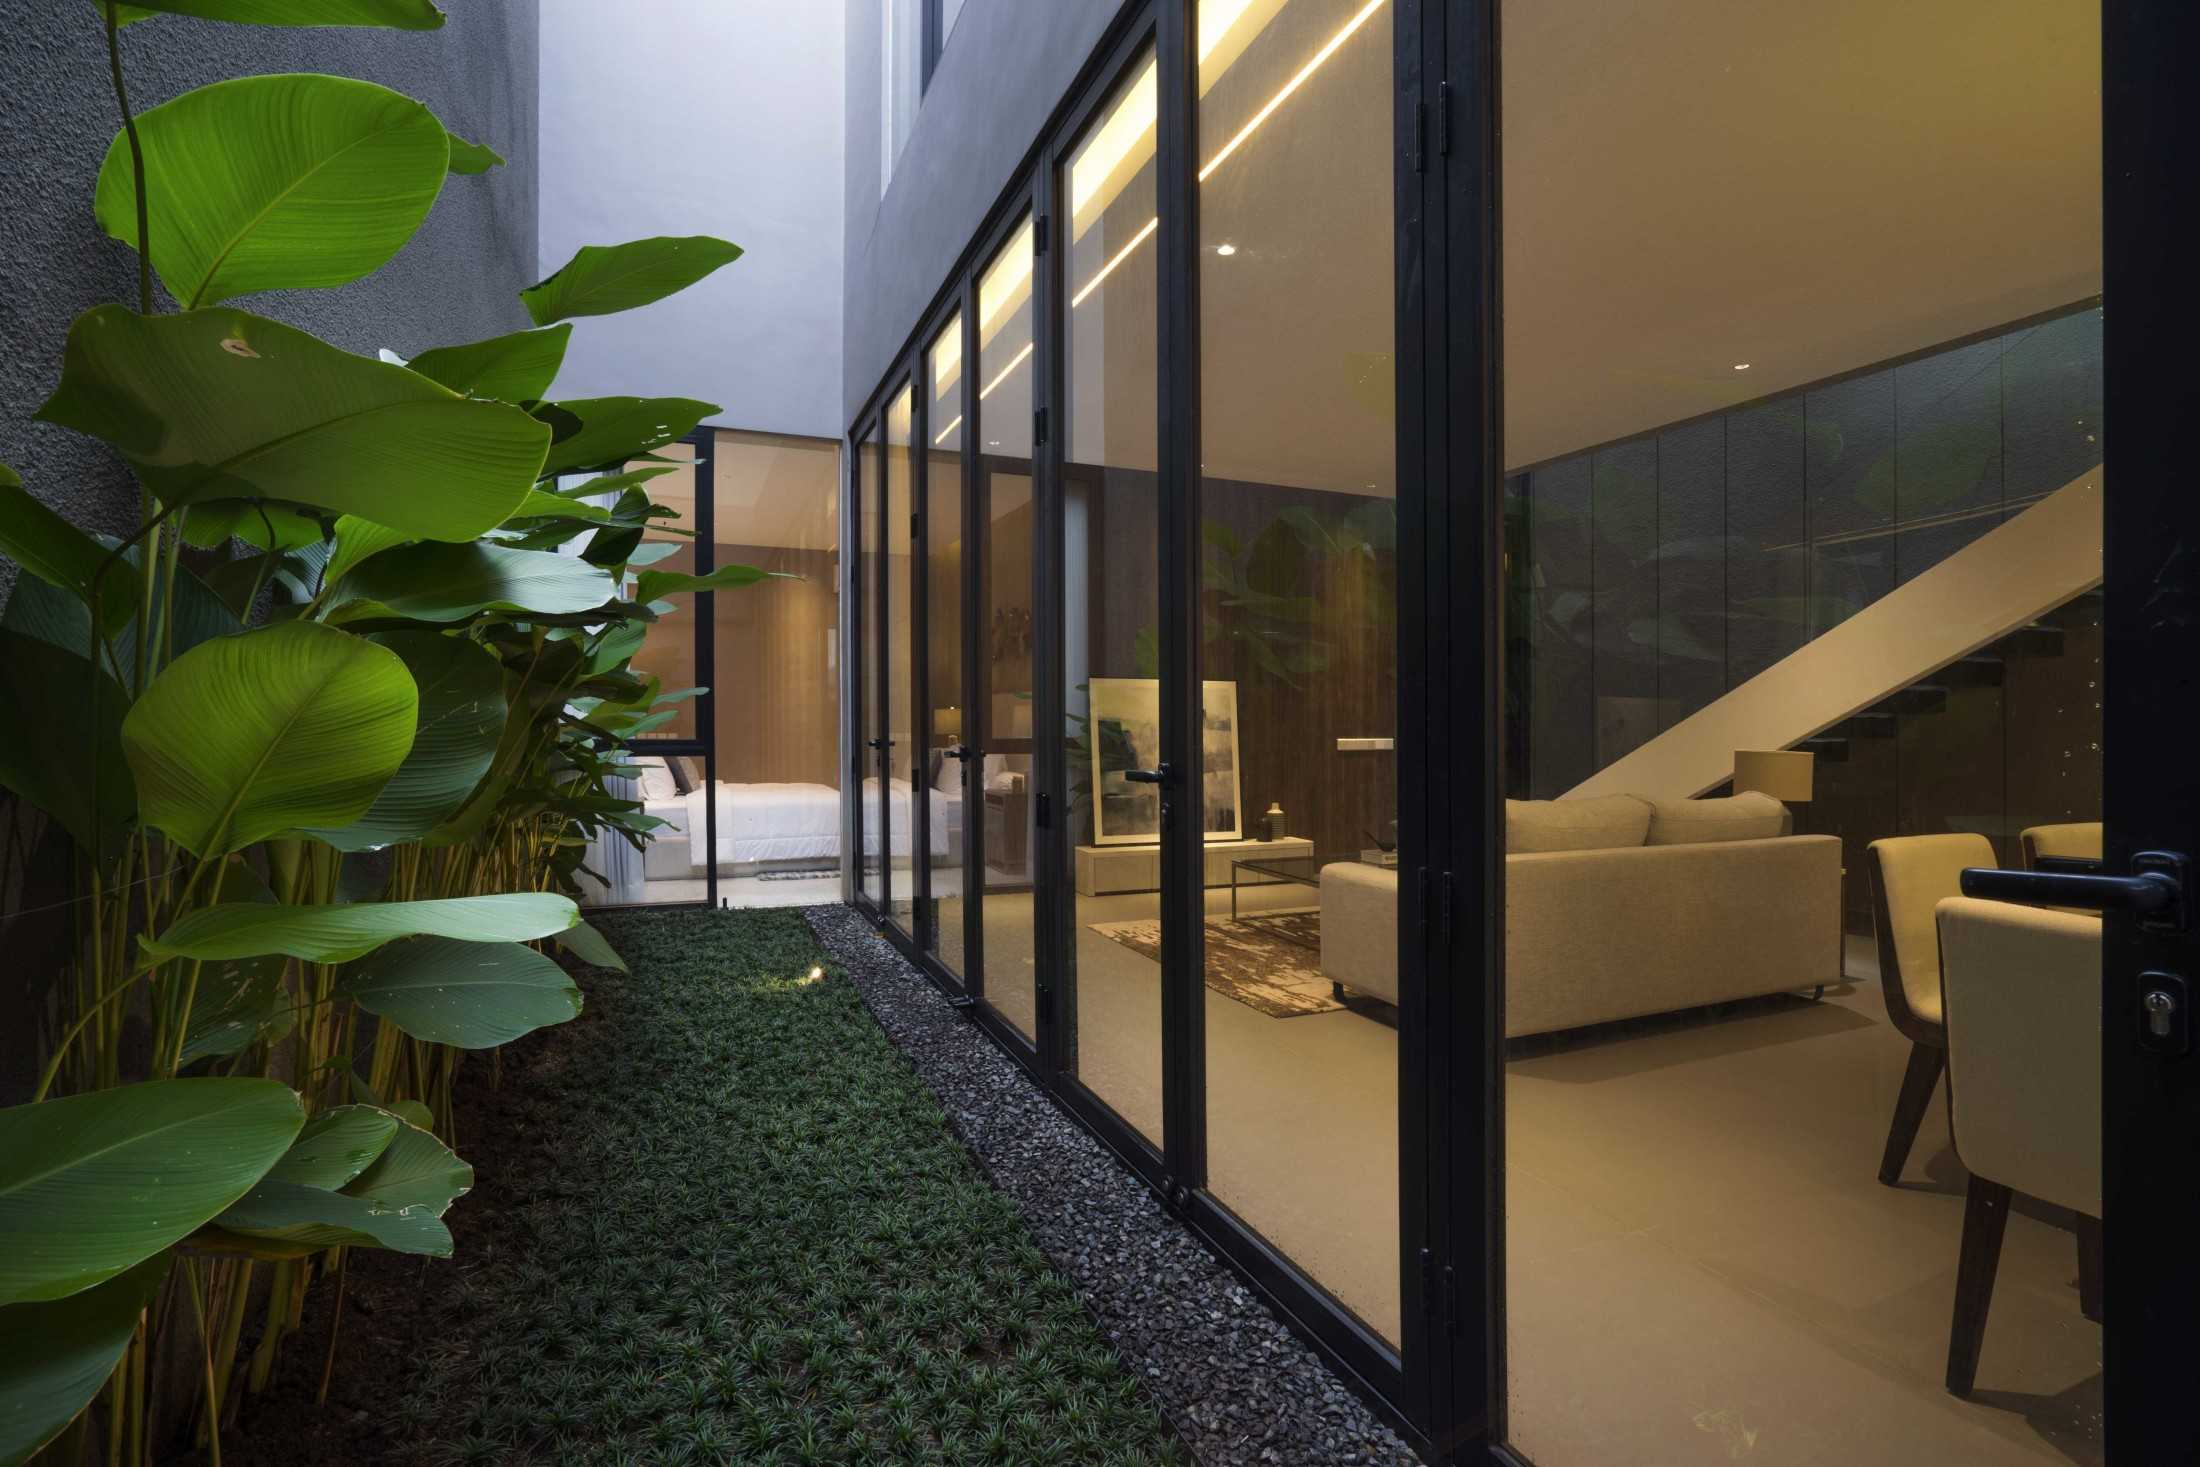 Simple Projects Architecture 'hhh' House Surabaya, Kota Sby, Jawa Timur, Indonesia  Simple-Projects-Architecture-Hhh-House  75059